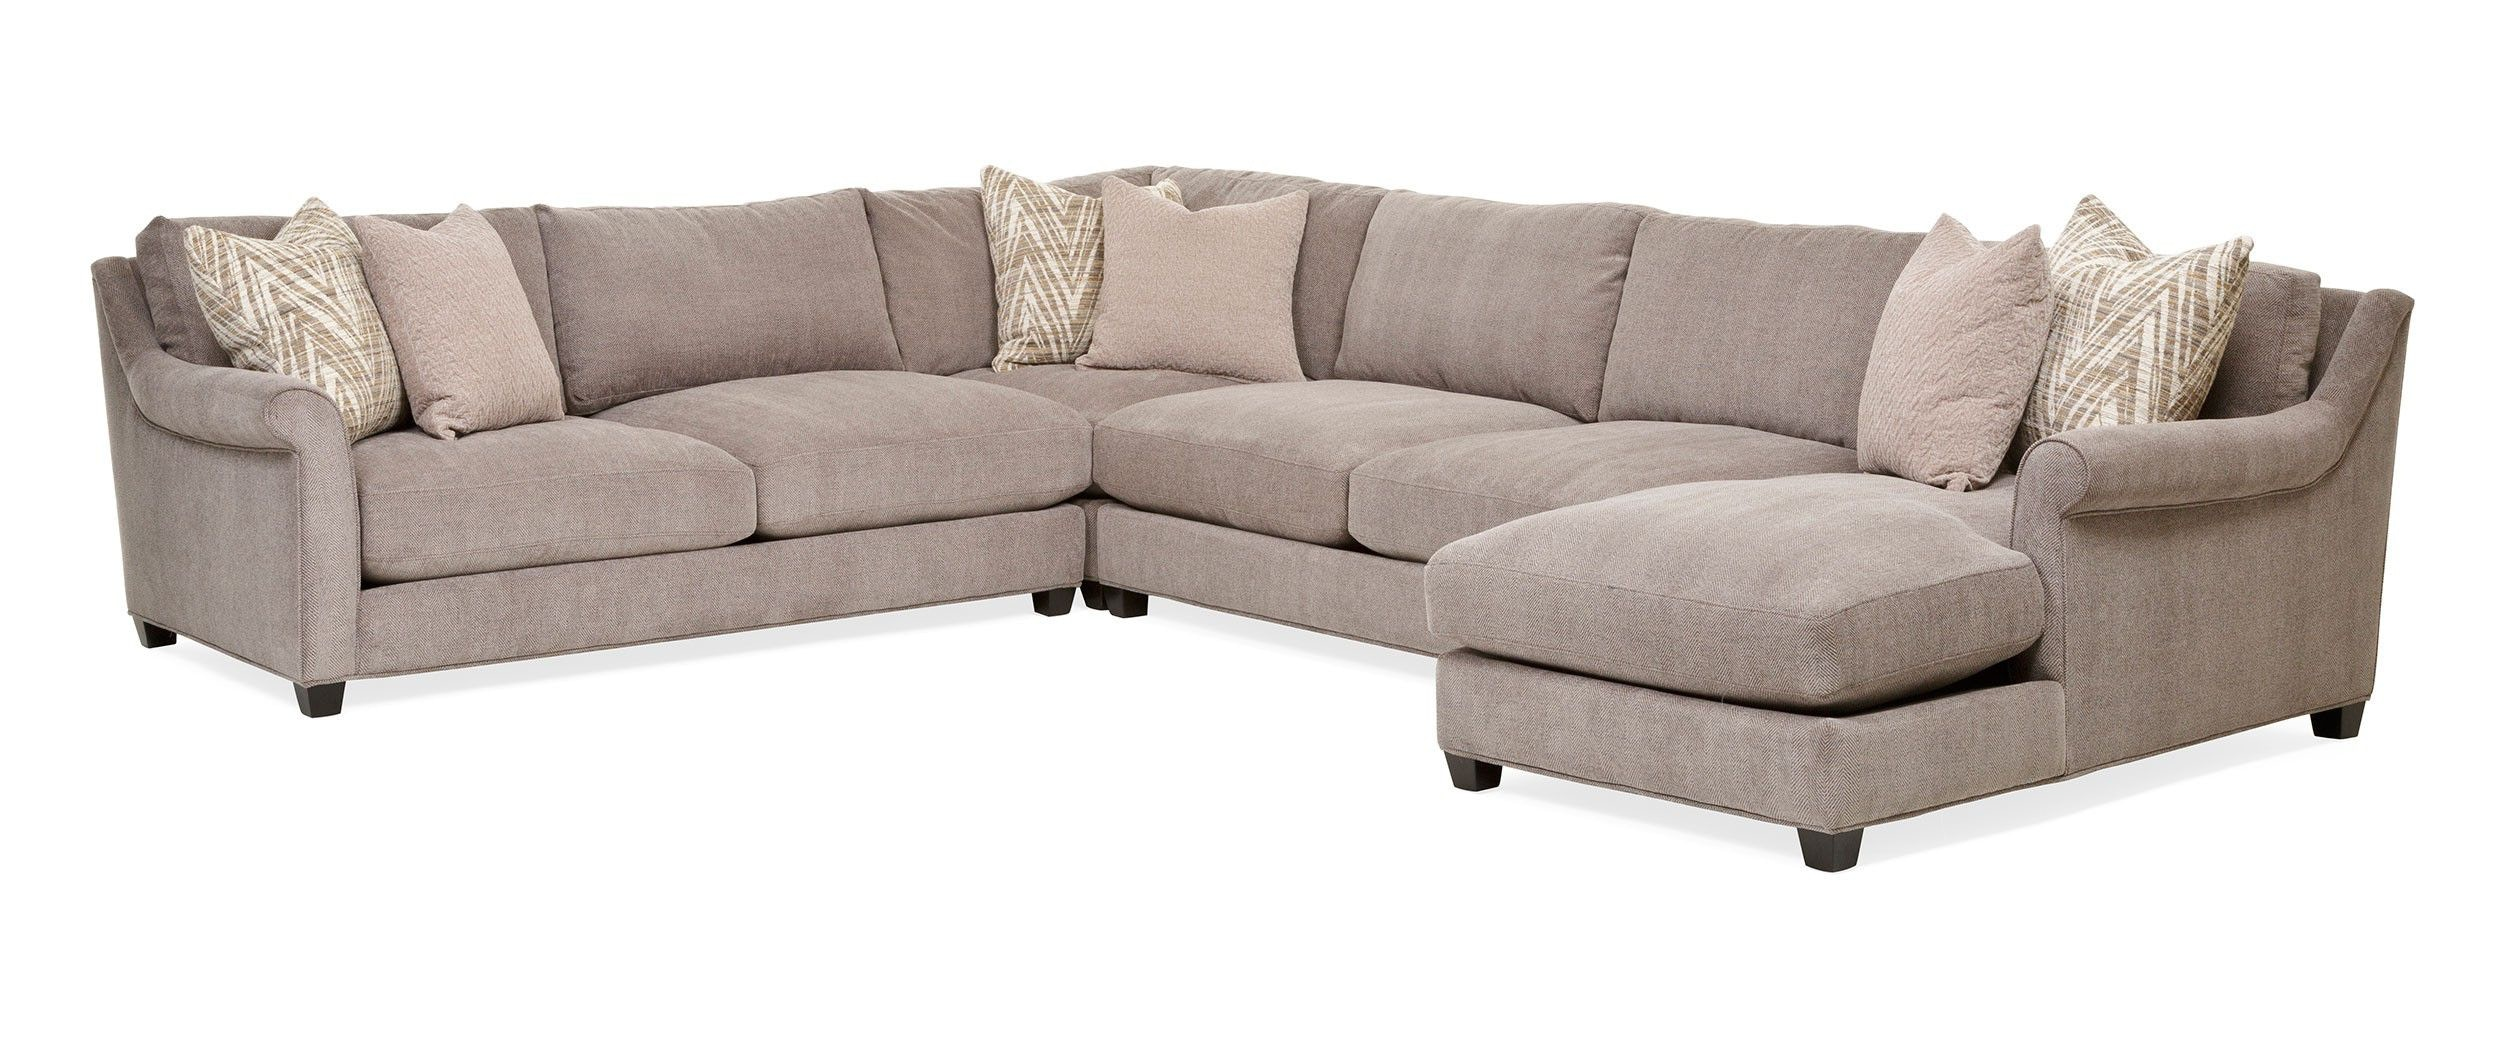 jamestown 2 piece sofa and loveseat group in gray corner beds uk cheap living room shearson 4 sectional